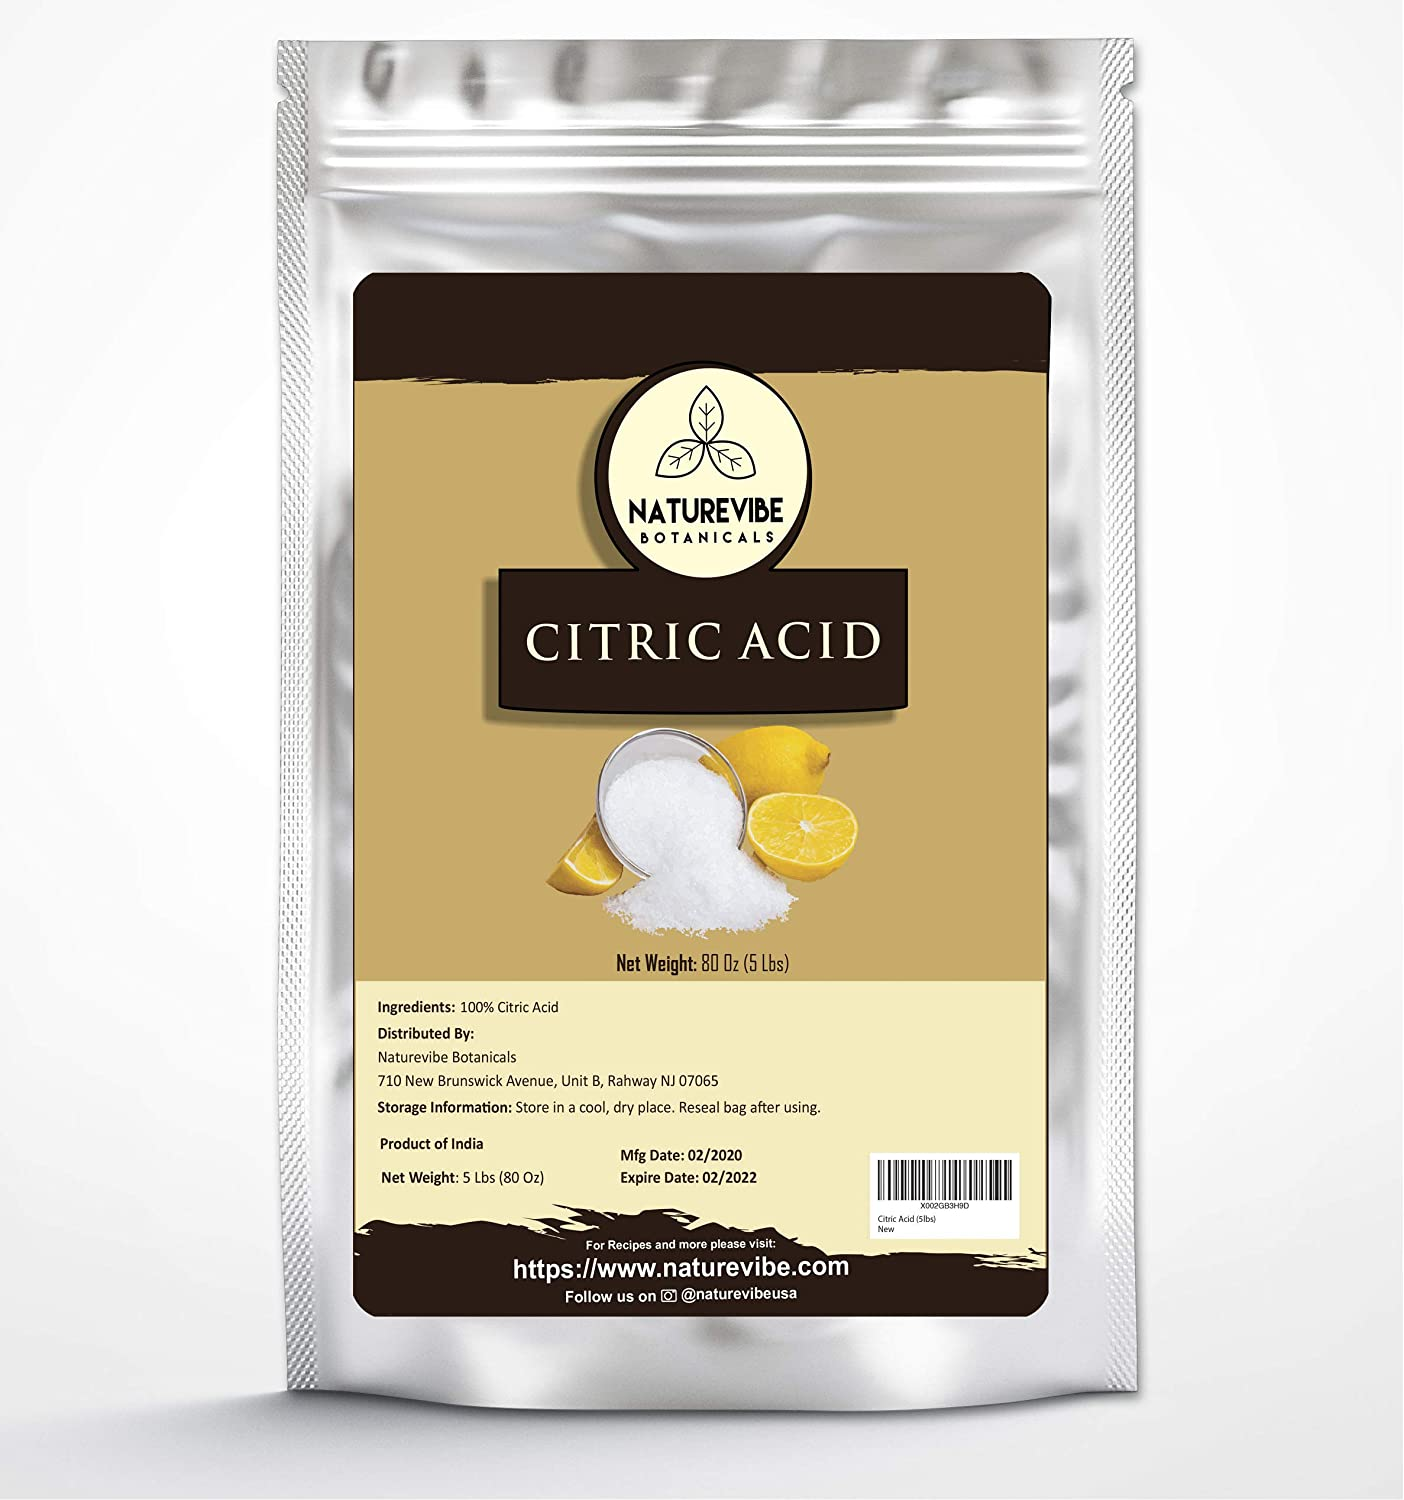 Naturevibe Botanicals Citric Acid, 5lbs | Non-GMO and Gluten Free | 100% Natural | Food Grade | Flavouring agent | Natural Enhancer (80 ounces)